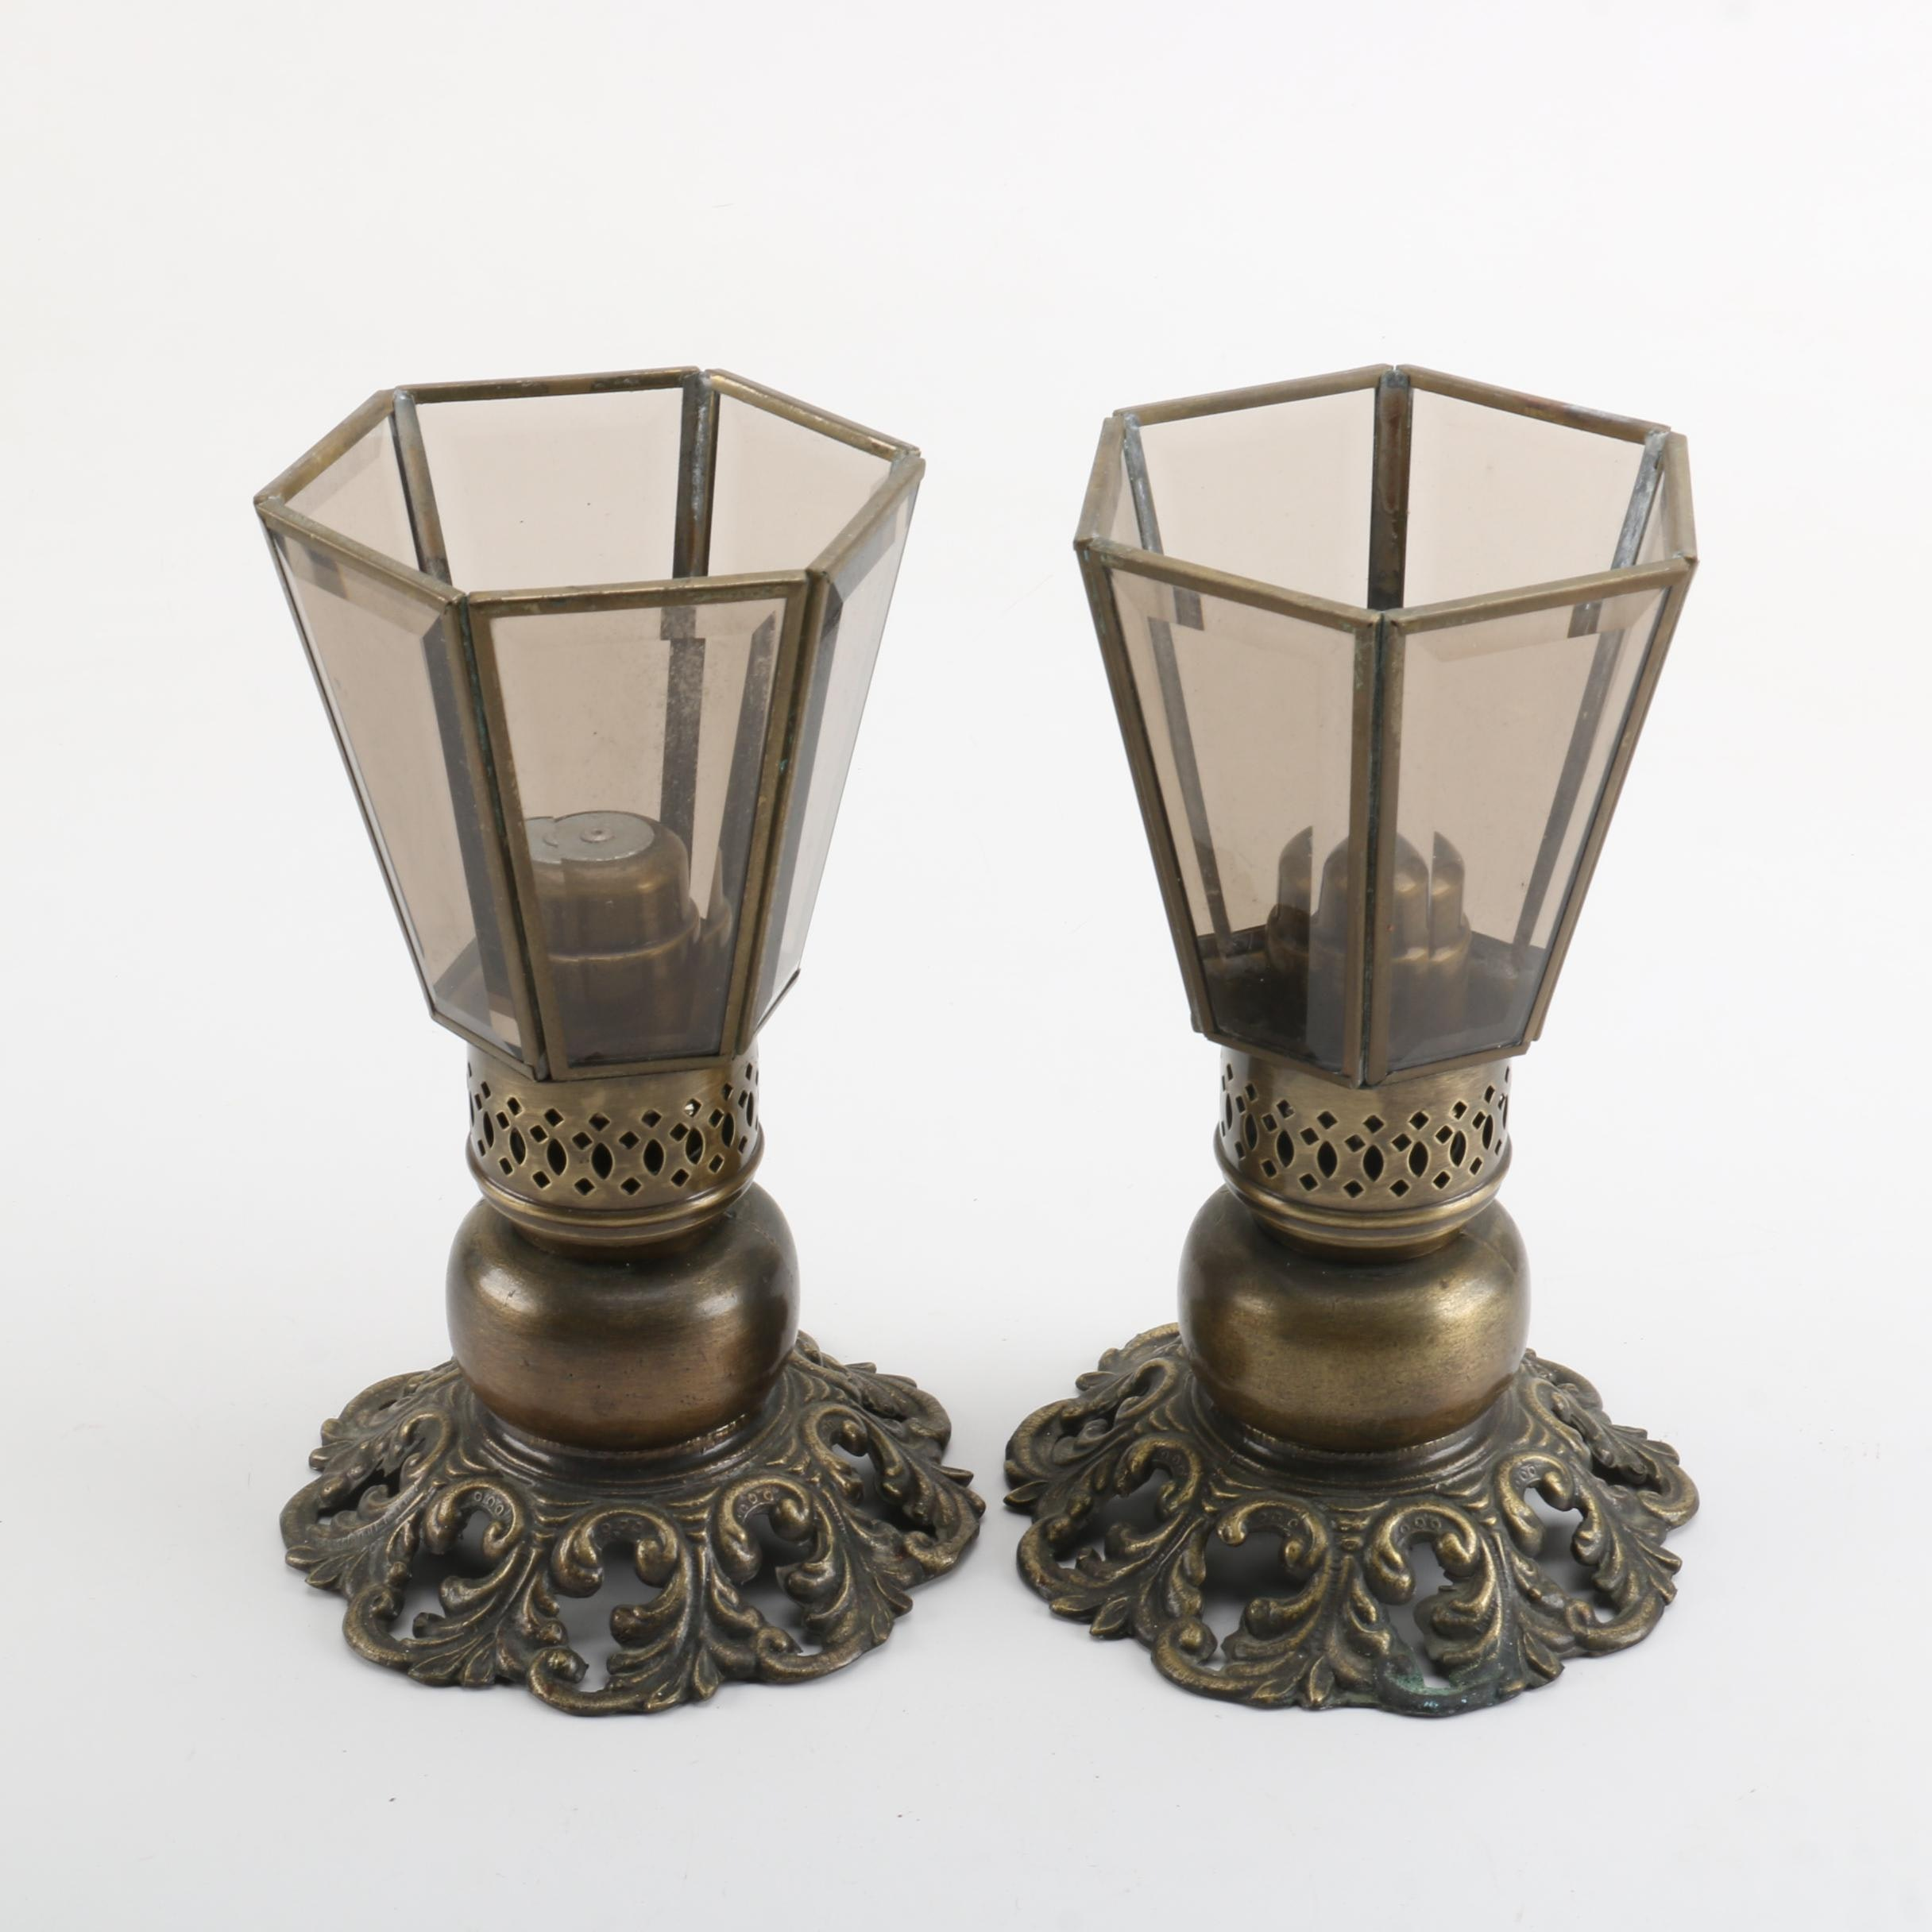 Glass Paneled Brass Candle Holders